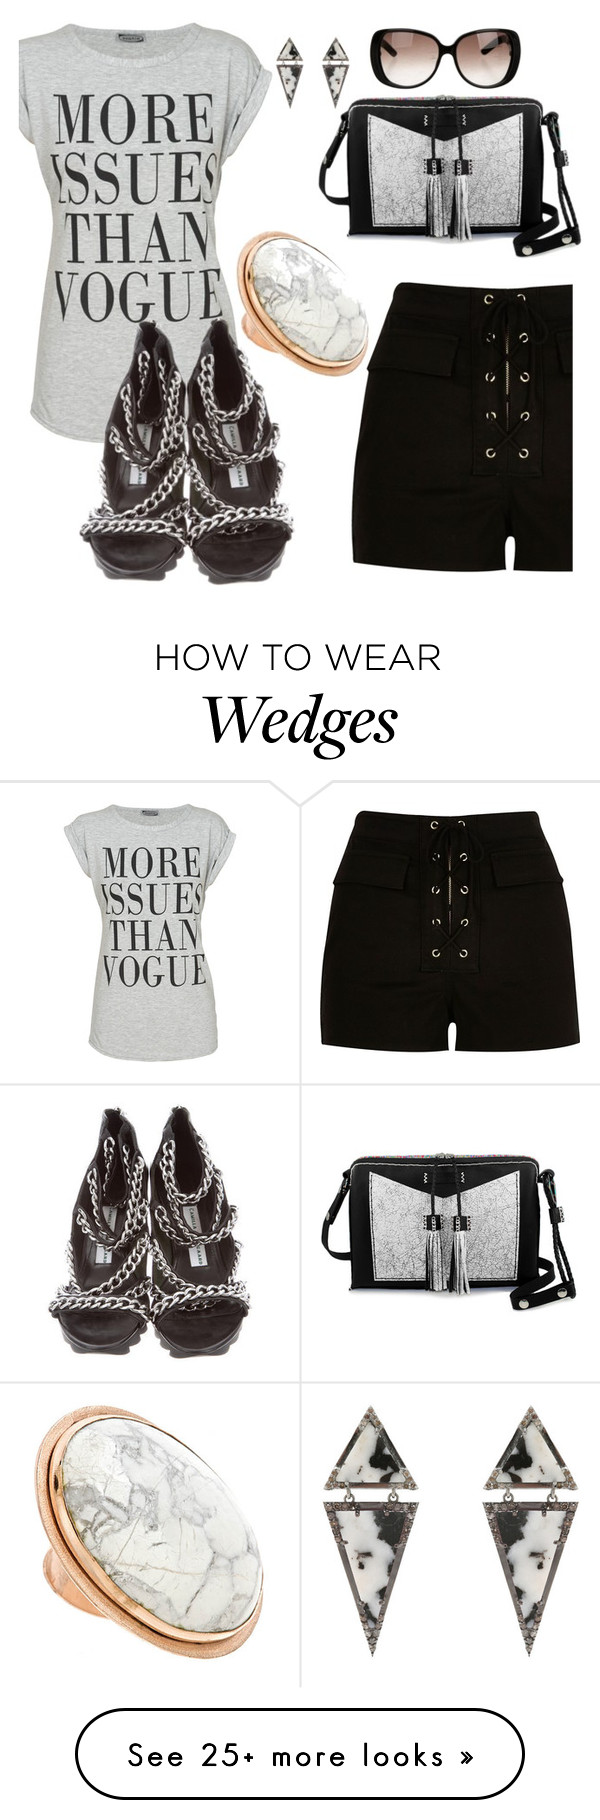 """""""MORE ISSUES THAN VOGUE"""" by deborah-calton on Polyvore featuring River Island, Carianne Moore, Gucci, ADORNIA, Camilla Skovgaard and Bita Pourtavoosi"""